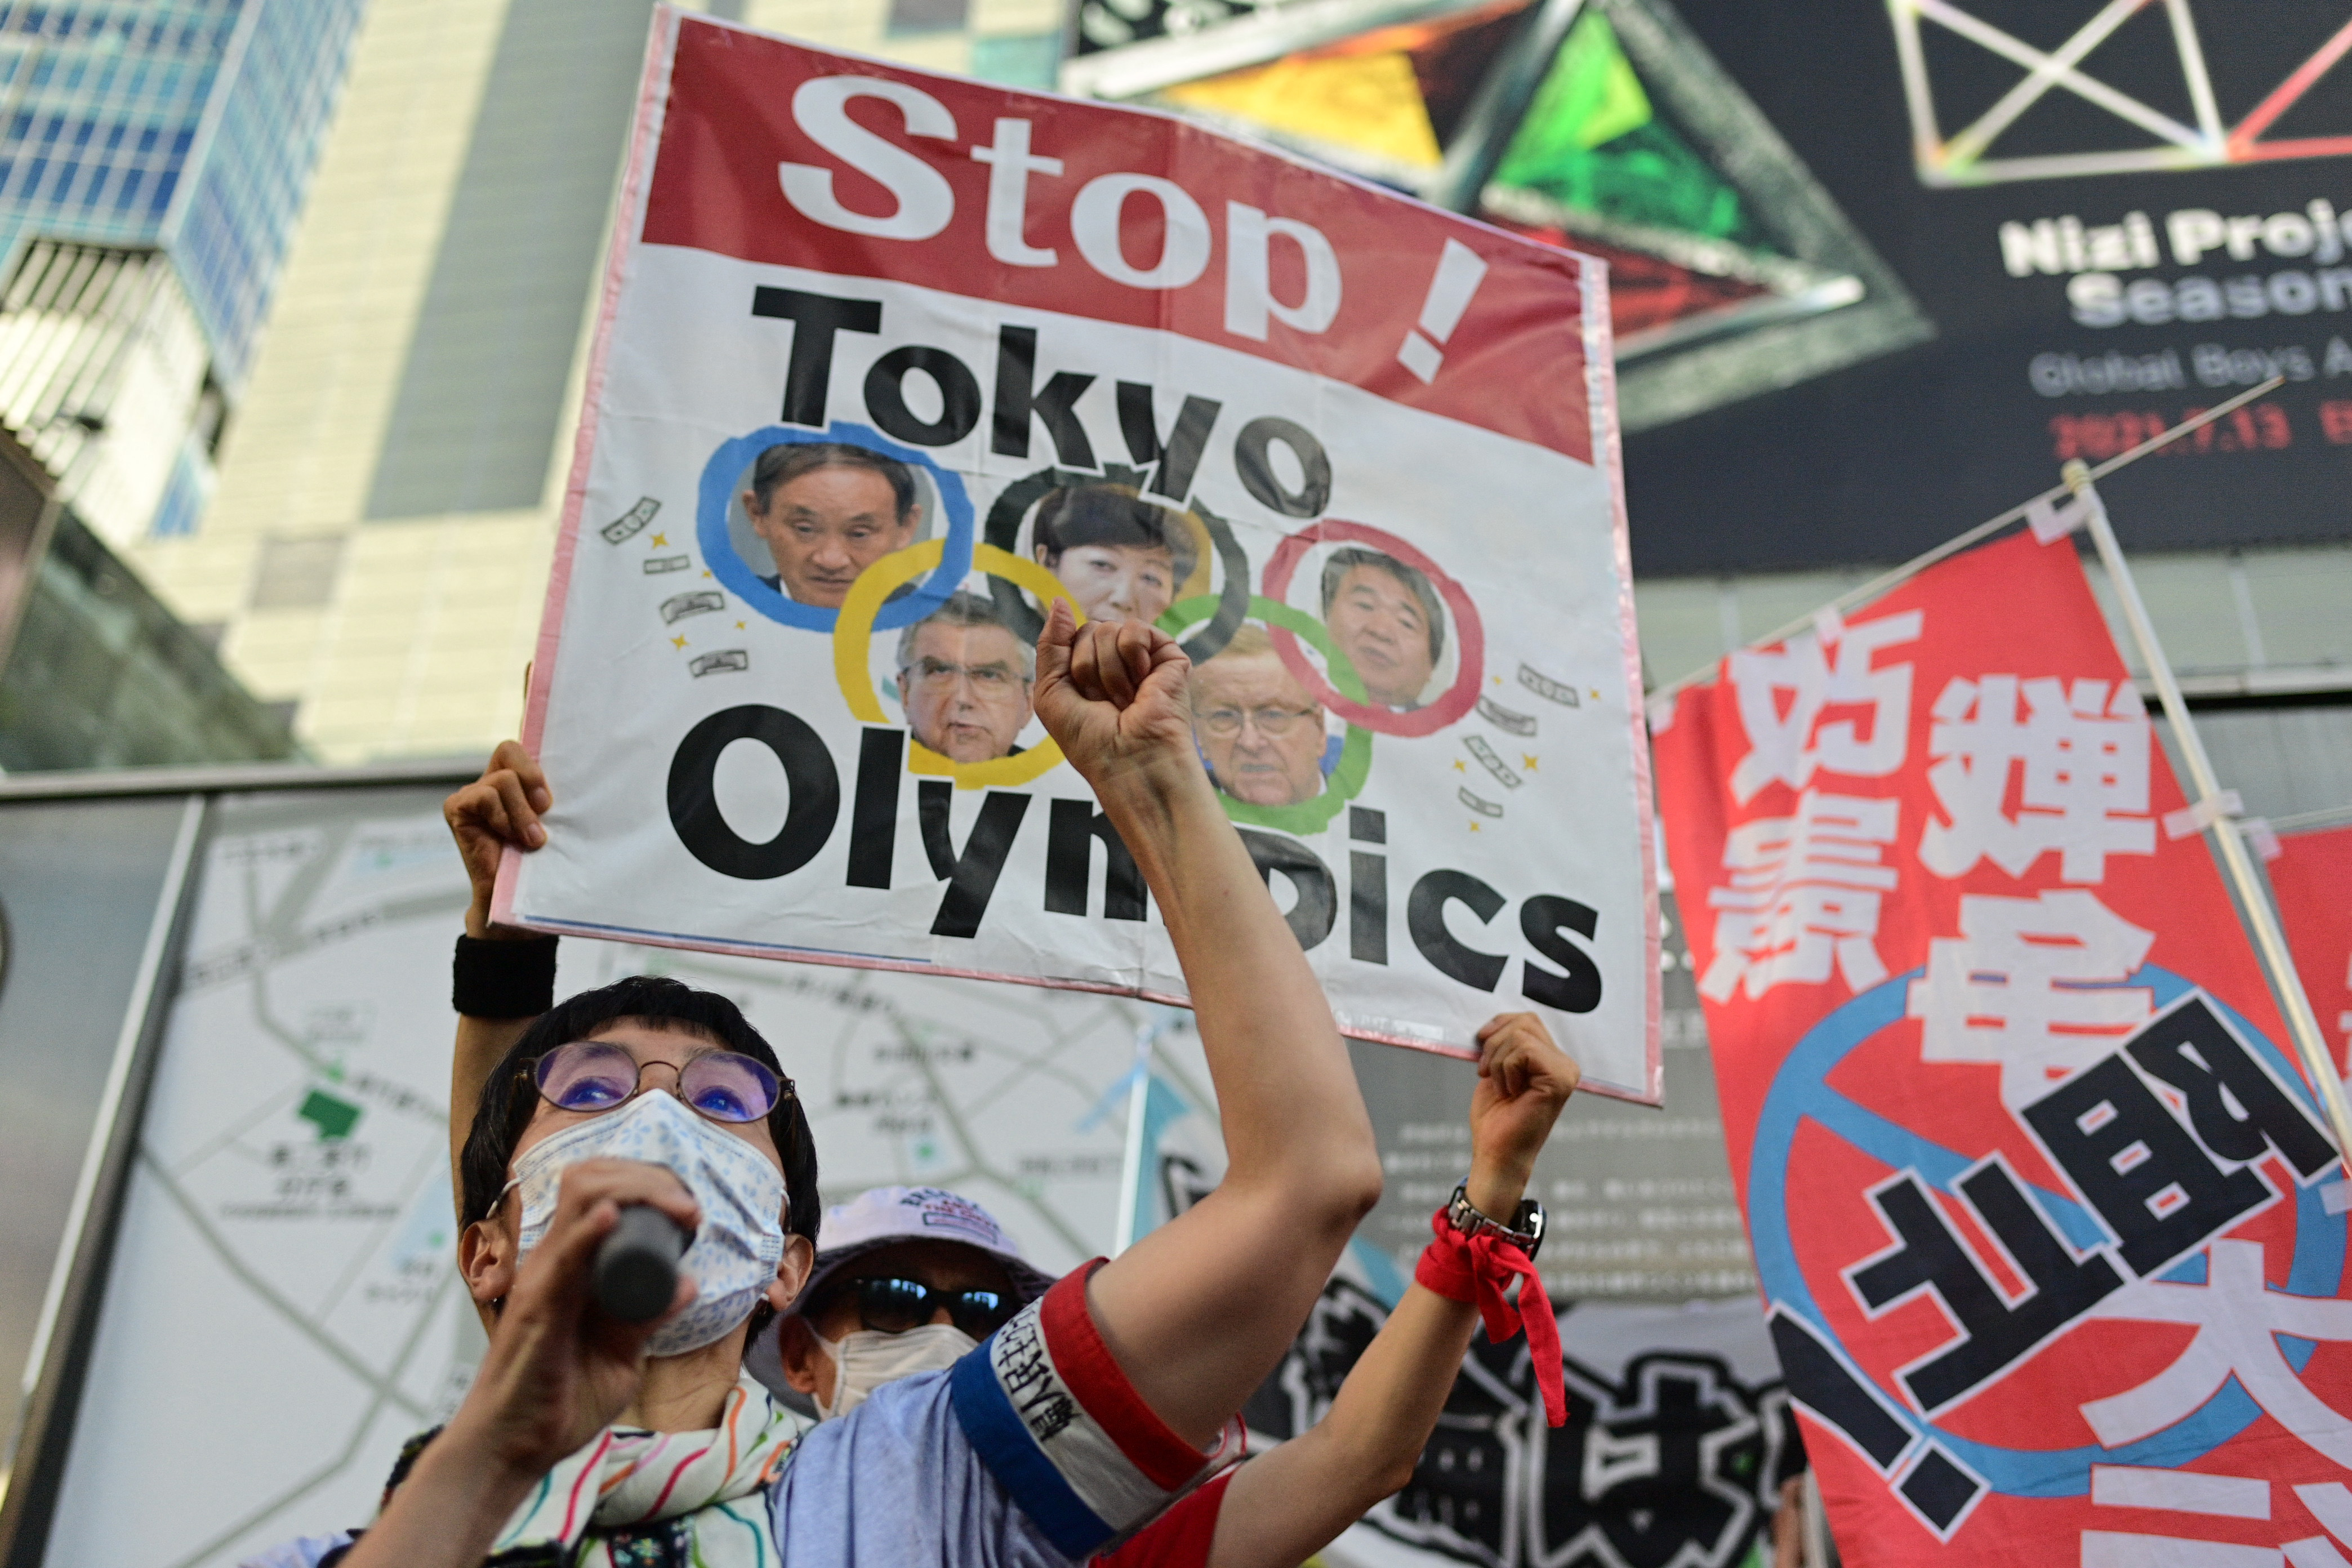 People protest against the hosting of the Tokyo 2020 Olympic Games in Tokyo on July 23, 2021. (Photo by Philip FONG / AFP) (Photo by PHILIP FONG/AFP via Getty Images)